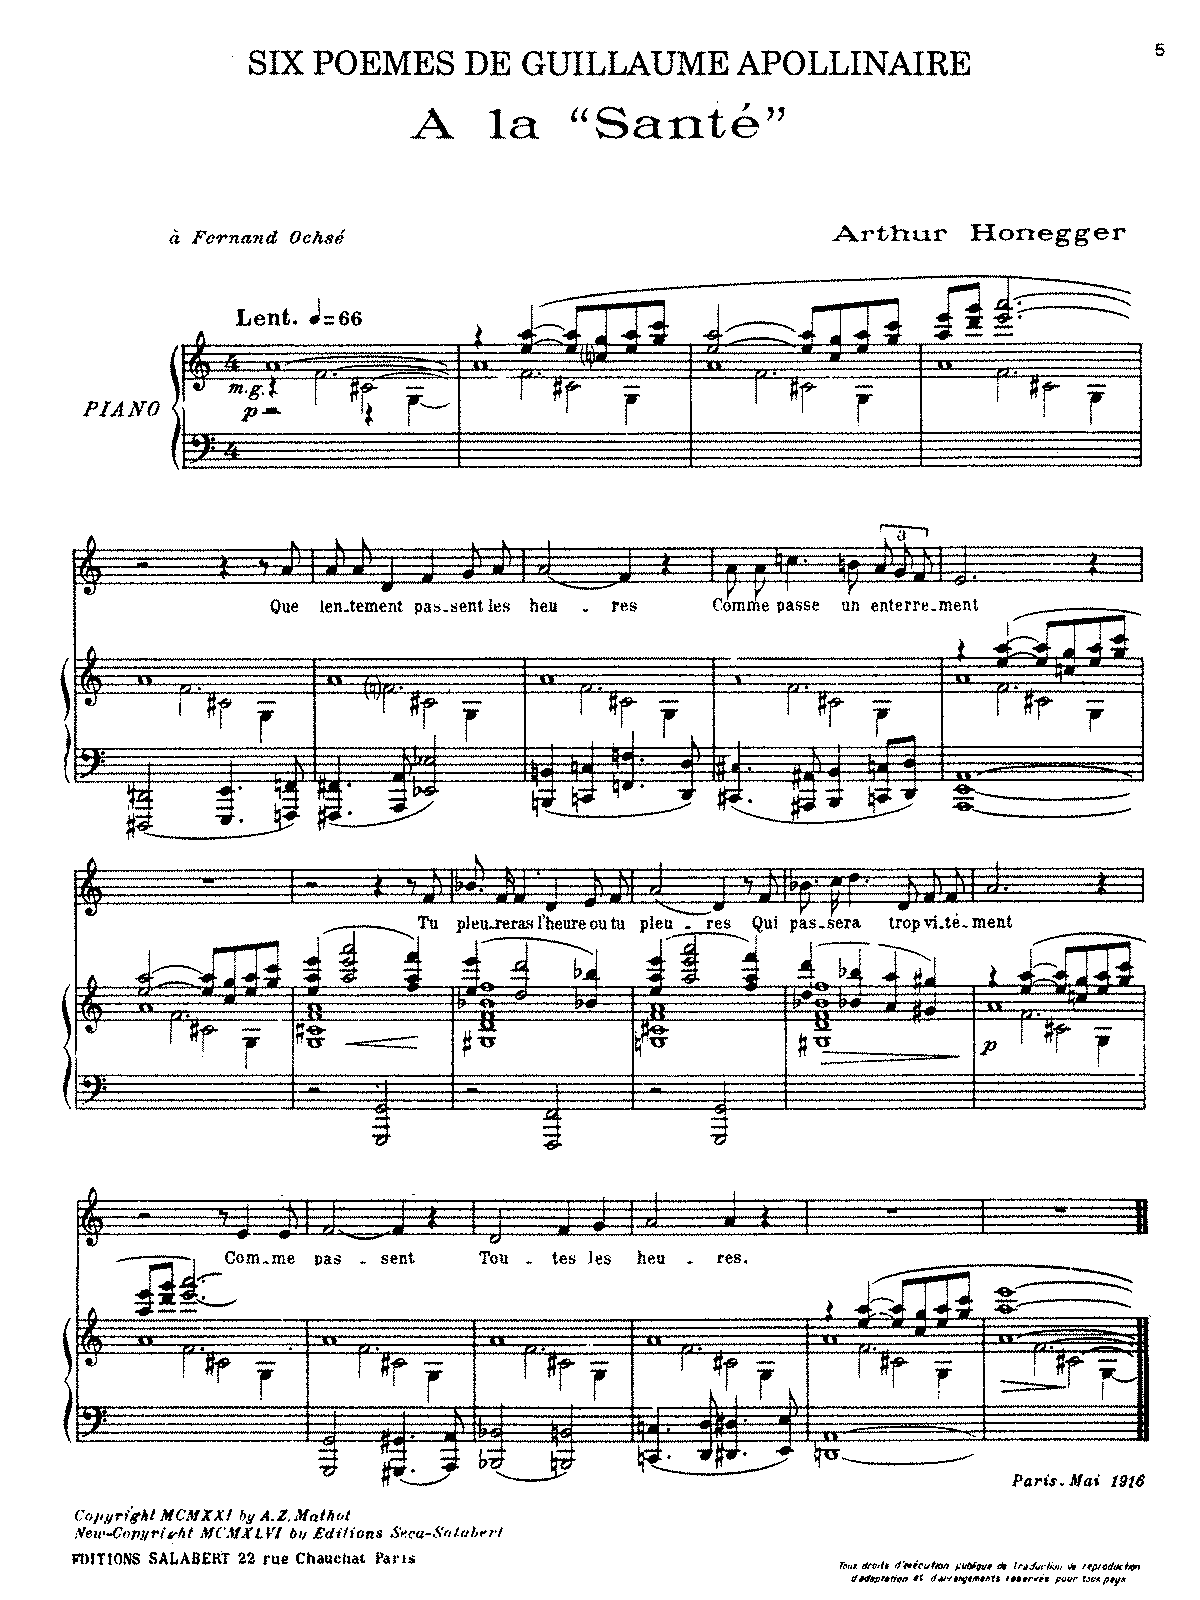 Honegger - 6 Poemes d'Apollinaire (voice and piano).pdf